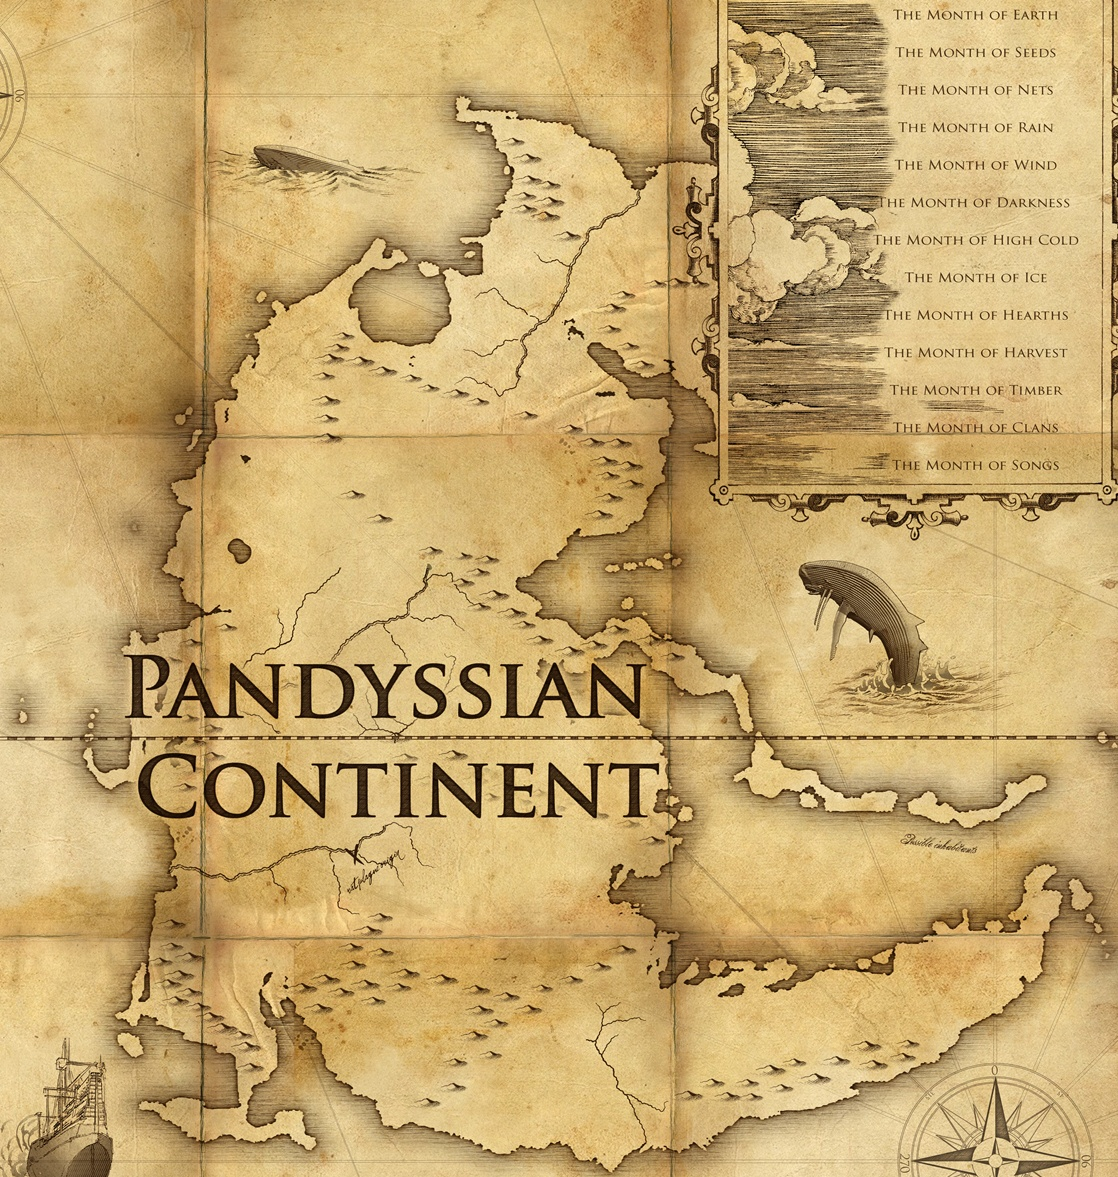 Pandyssian continent dishonored wiki fandom powered by wikia gumiabroncs Choice Image